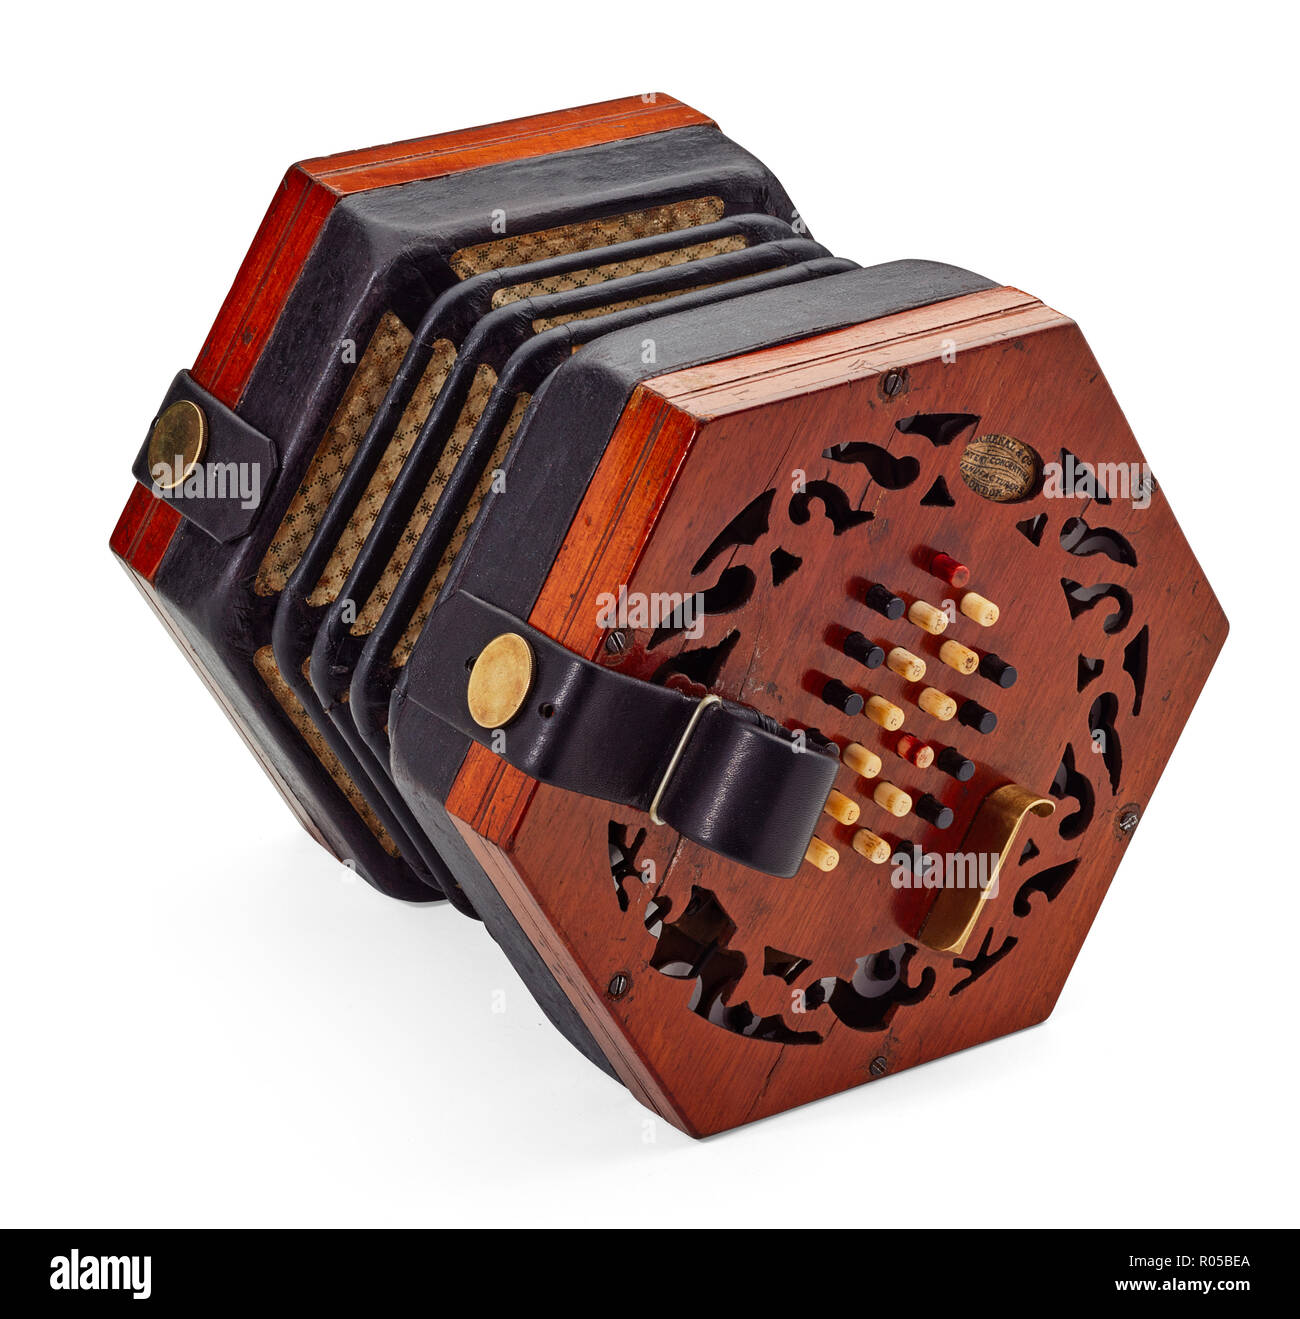 A restored 19th century English Lachenal & Co bone buttoned concertina on a white background - Stock Image